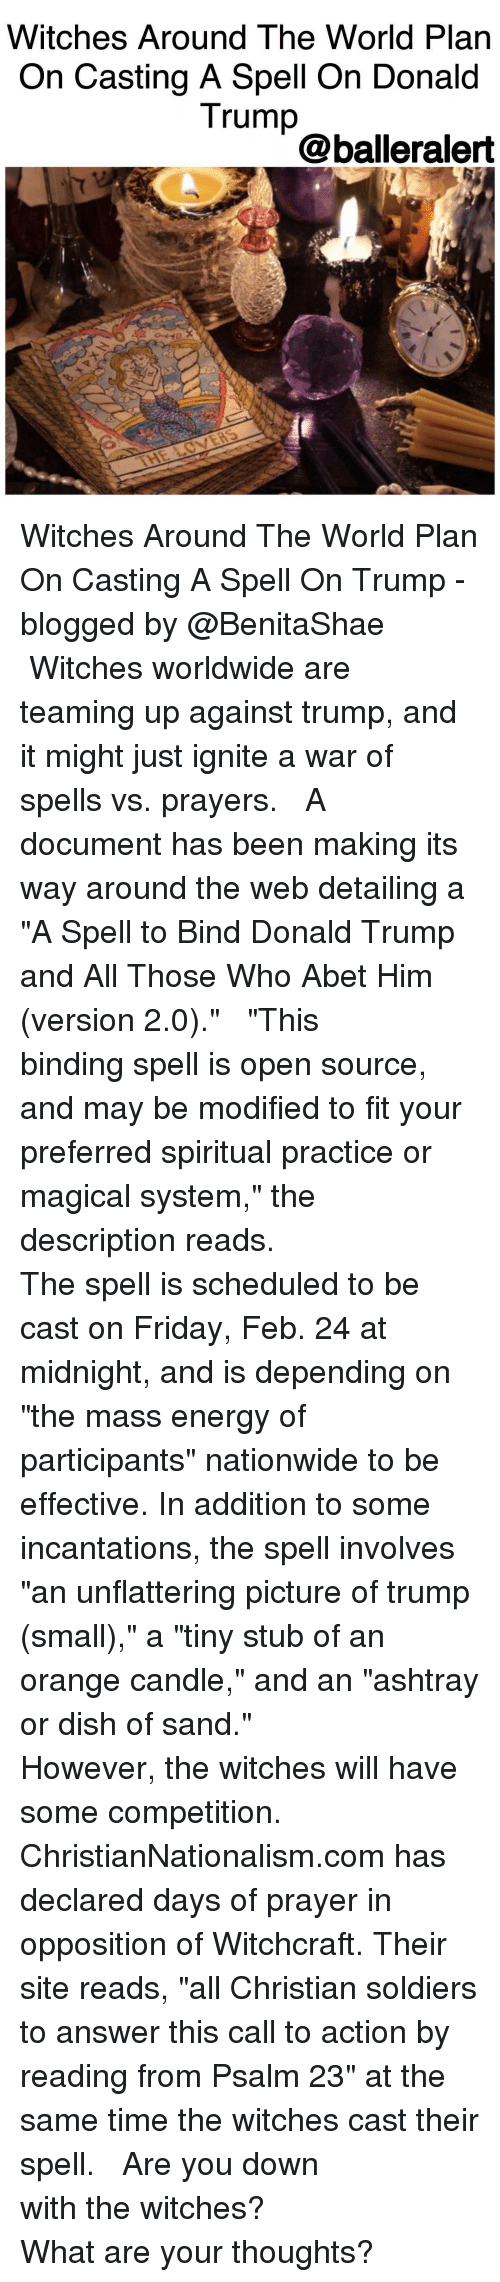 """Casted: Witches Around The World Plan  On Casting A Spell On Donald  Trump  @balleralert Witches Around The World Plan On Casting A Spell On Trump -blogged by @BenitaShae ⠀⠀⠀⠀⠀⠀⠀ ⠀⠀⠀⠀⠀⠀⠀ Witches worldwide are teaming up against trump, and it might just ignite a war of spells vs. prayers. ⠀⠀⠀⠀⠀⠀⠀ ⠀⠀⠀⠀⠀⠀⠀ A document has been making its way around the web detailing a """"A Spell to Bind Donald Trump and All Those Who Abet Him (version 2.0)."""" ⠀⠀⠀⠀⠀⠀⠀ ⠀⠀⠀⠀⠀⠀⠀ """"This binding spell is open source, and may be modified to fit your preferred spiritual practice or magical system,"""" the description reads. ⠀⠀⠀⠀⠀⠀⠀ ⠀⠀⠀⠀⠀⠀⠀ The spell is scheduled to be cast on Friday, Feb. 24 at midnight, and is depending on """"the mass energy of participants"""" nationwide to be effective. In addition to some incantations, the spell involves """"an unflattering picture of trump (small),"""" a """"tiny stub of an orange candle,"""" and an """"ashtray or dish of sand."""" ⠀⠀⠀⠀⠀⠀⠀ ⠀⠀⠀⠀⠀⠀⠀ However, the witches will have some competition. ⠀⠀⠀⠀⠀⠀⠀ ⠀⠀⠀⠀⠀⠀⠀ ChristianNationalism.com has declared days of prayer in opposition of Witchcraft. Their site reads, """"all Christian soldiers to answer this call to action by reading from Psalm 23"""" at the same time the witches cast their spell. ⠀⠀⠀⠀⠀⠀⠀ ⠀⠀⠀⠀⠀⠀⠀ Are you down with the witches? ⠀⠀⠀⠀⠀⠀⠀ ⠀⠀⠀⠀⠀⠀⠀ What are your thoughts?"""